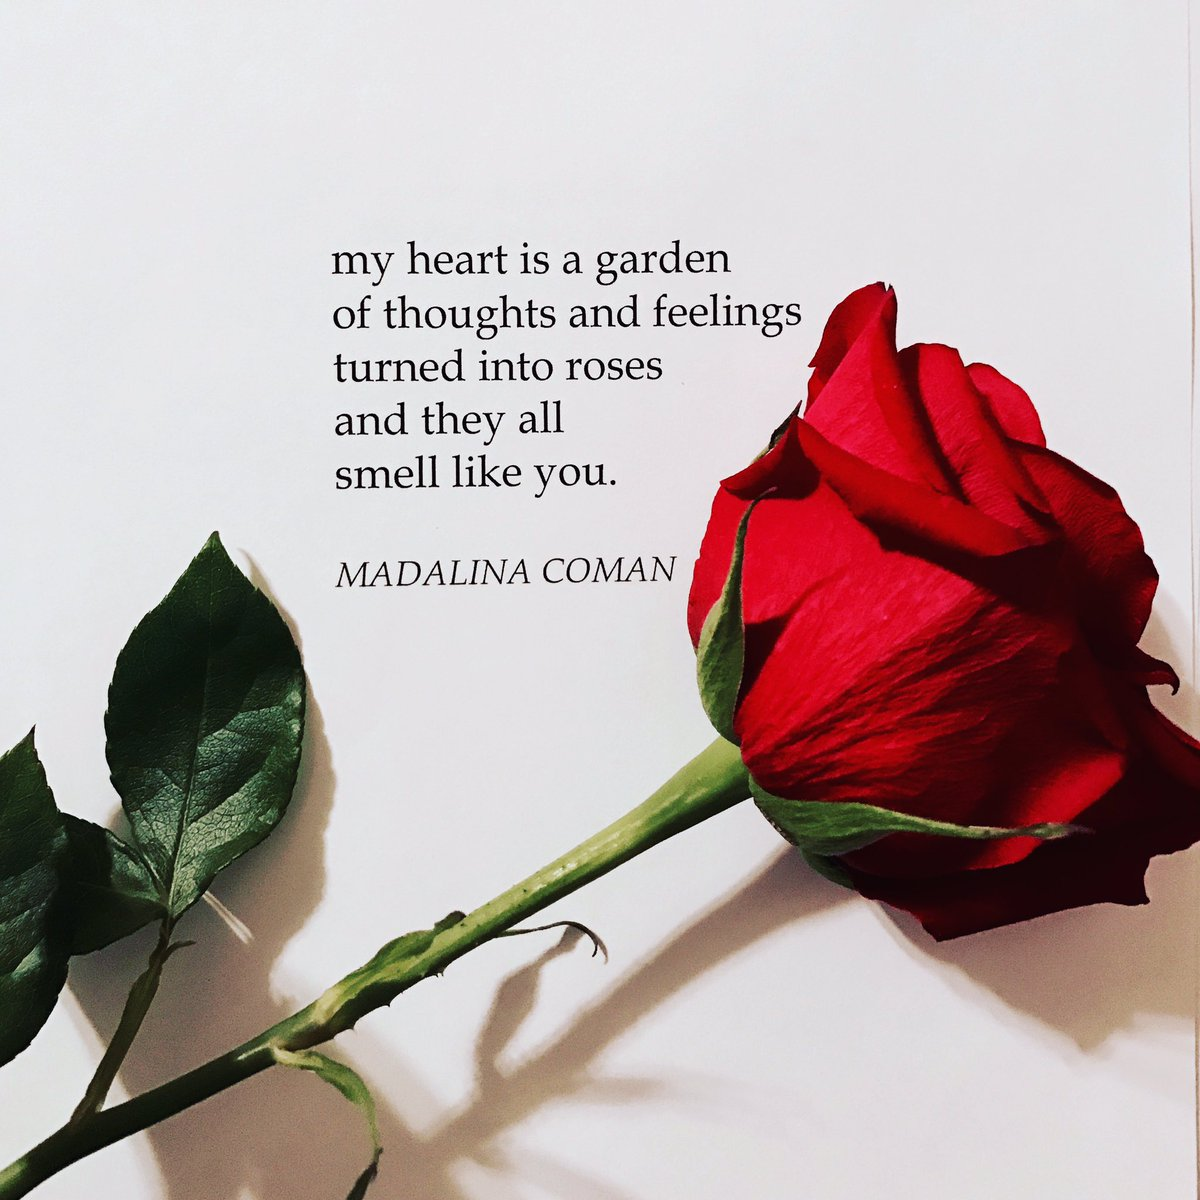 Madalina On Twitter My Heart Is A Garden Of Thoughts And